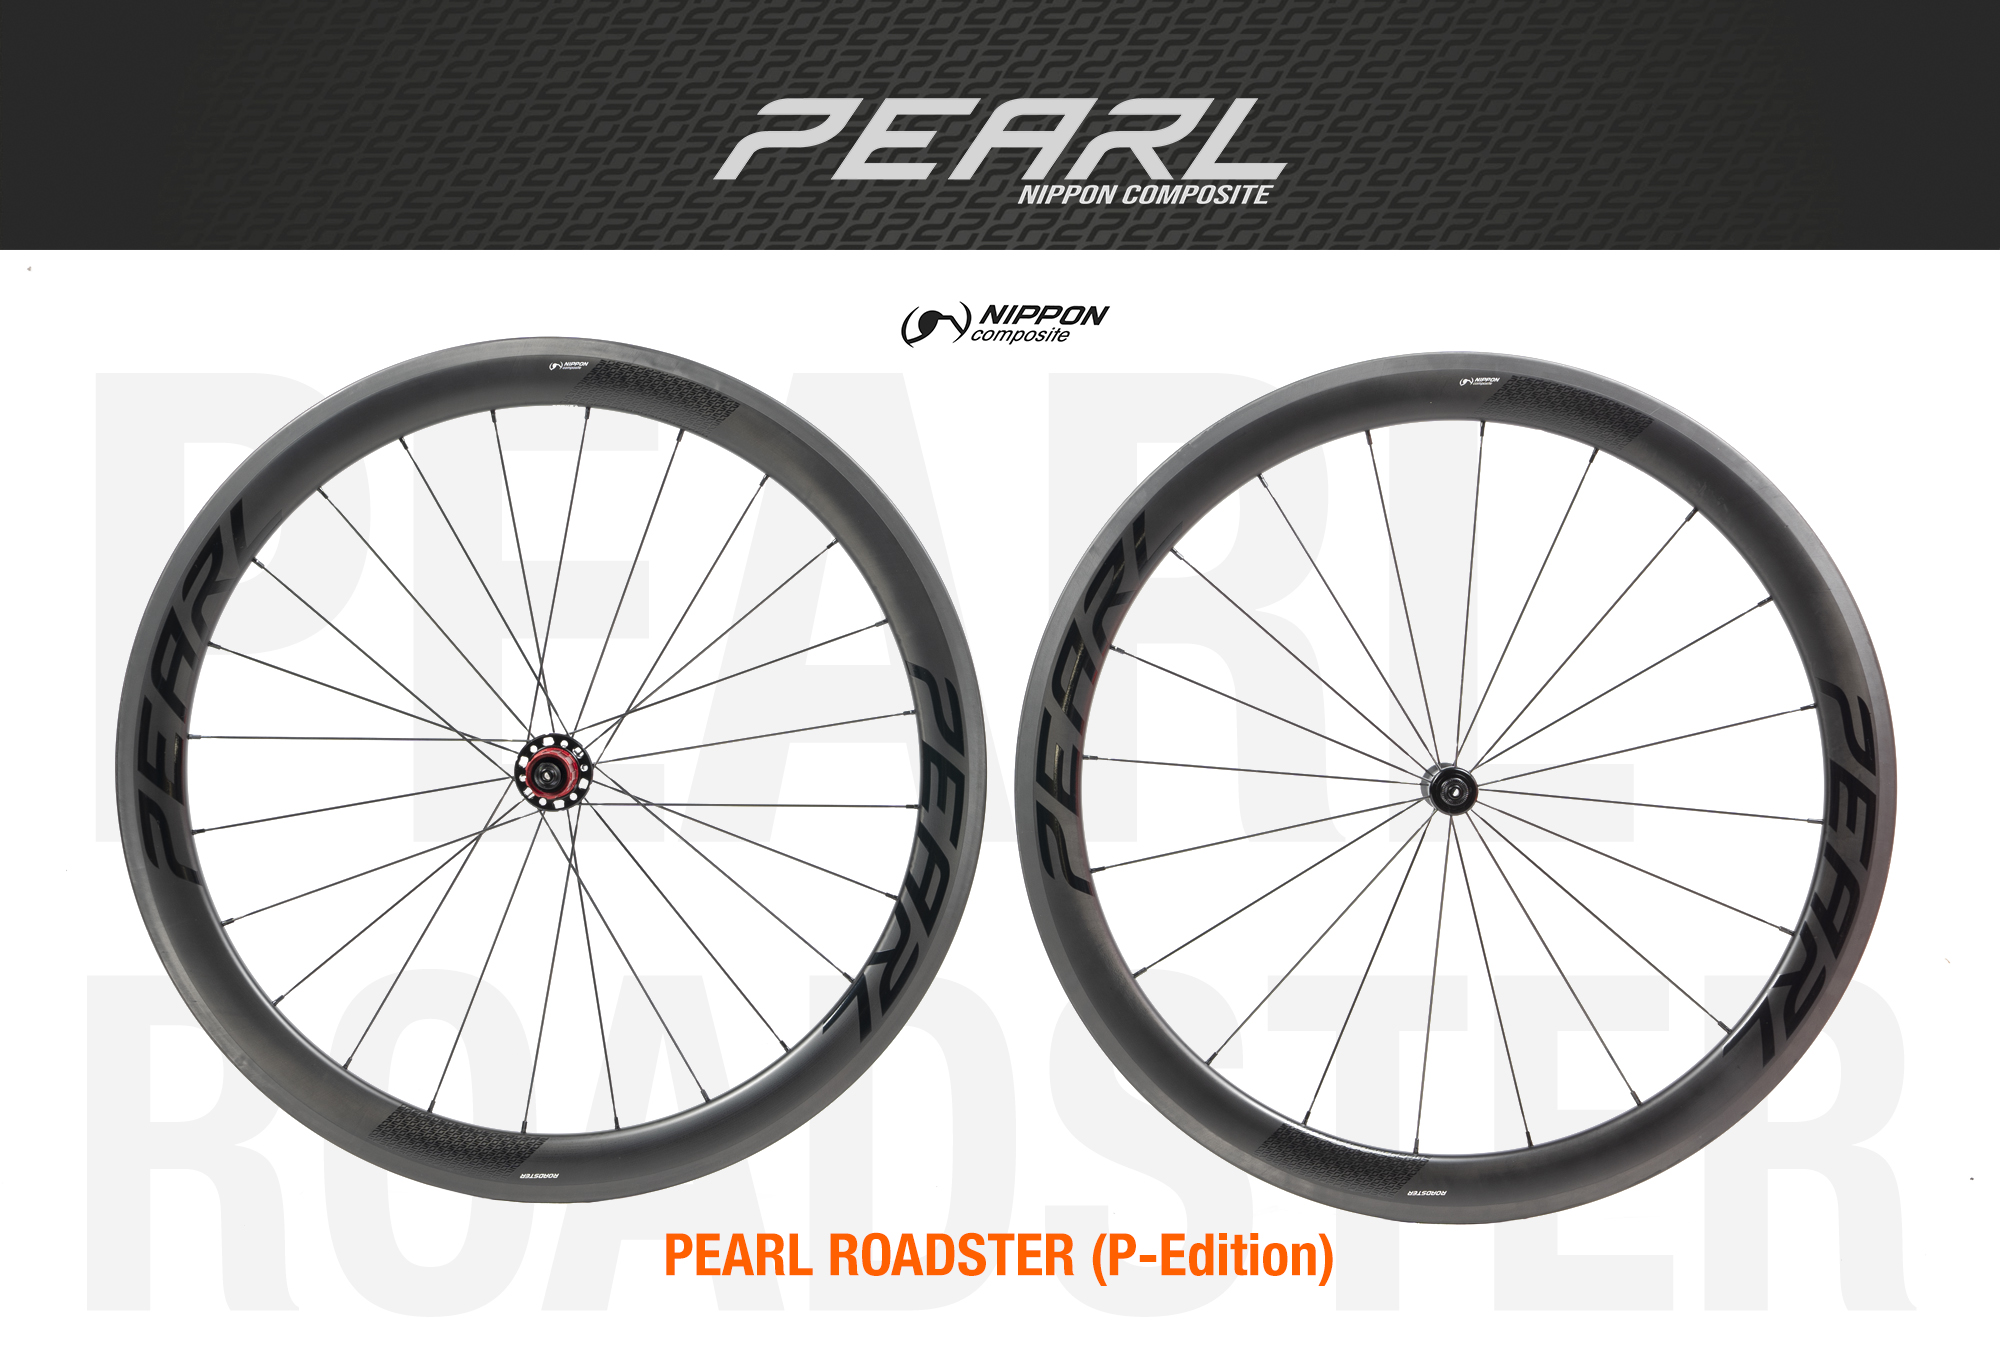 PEARL | ROADSTER (P-Edition) Carbon 50mm. 700c